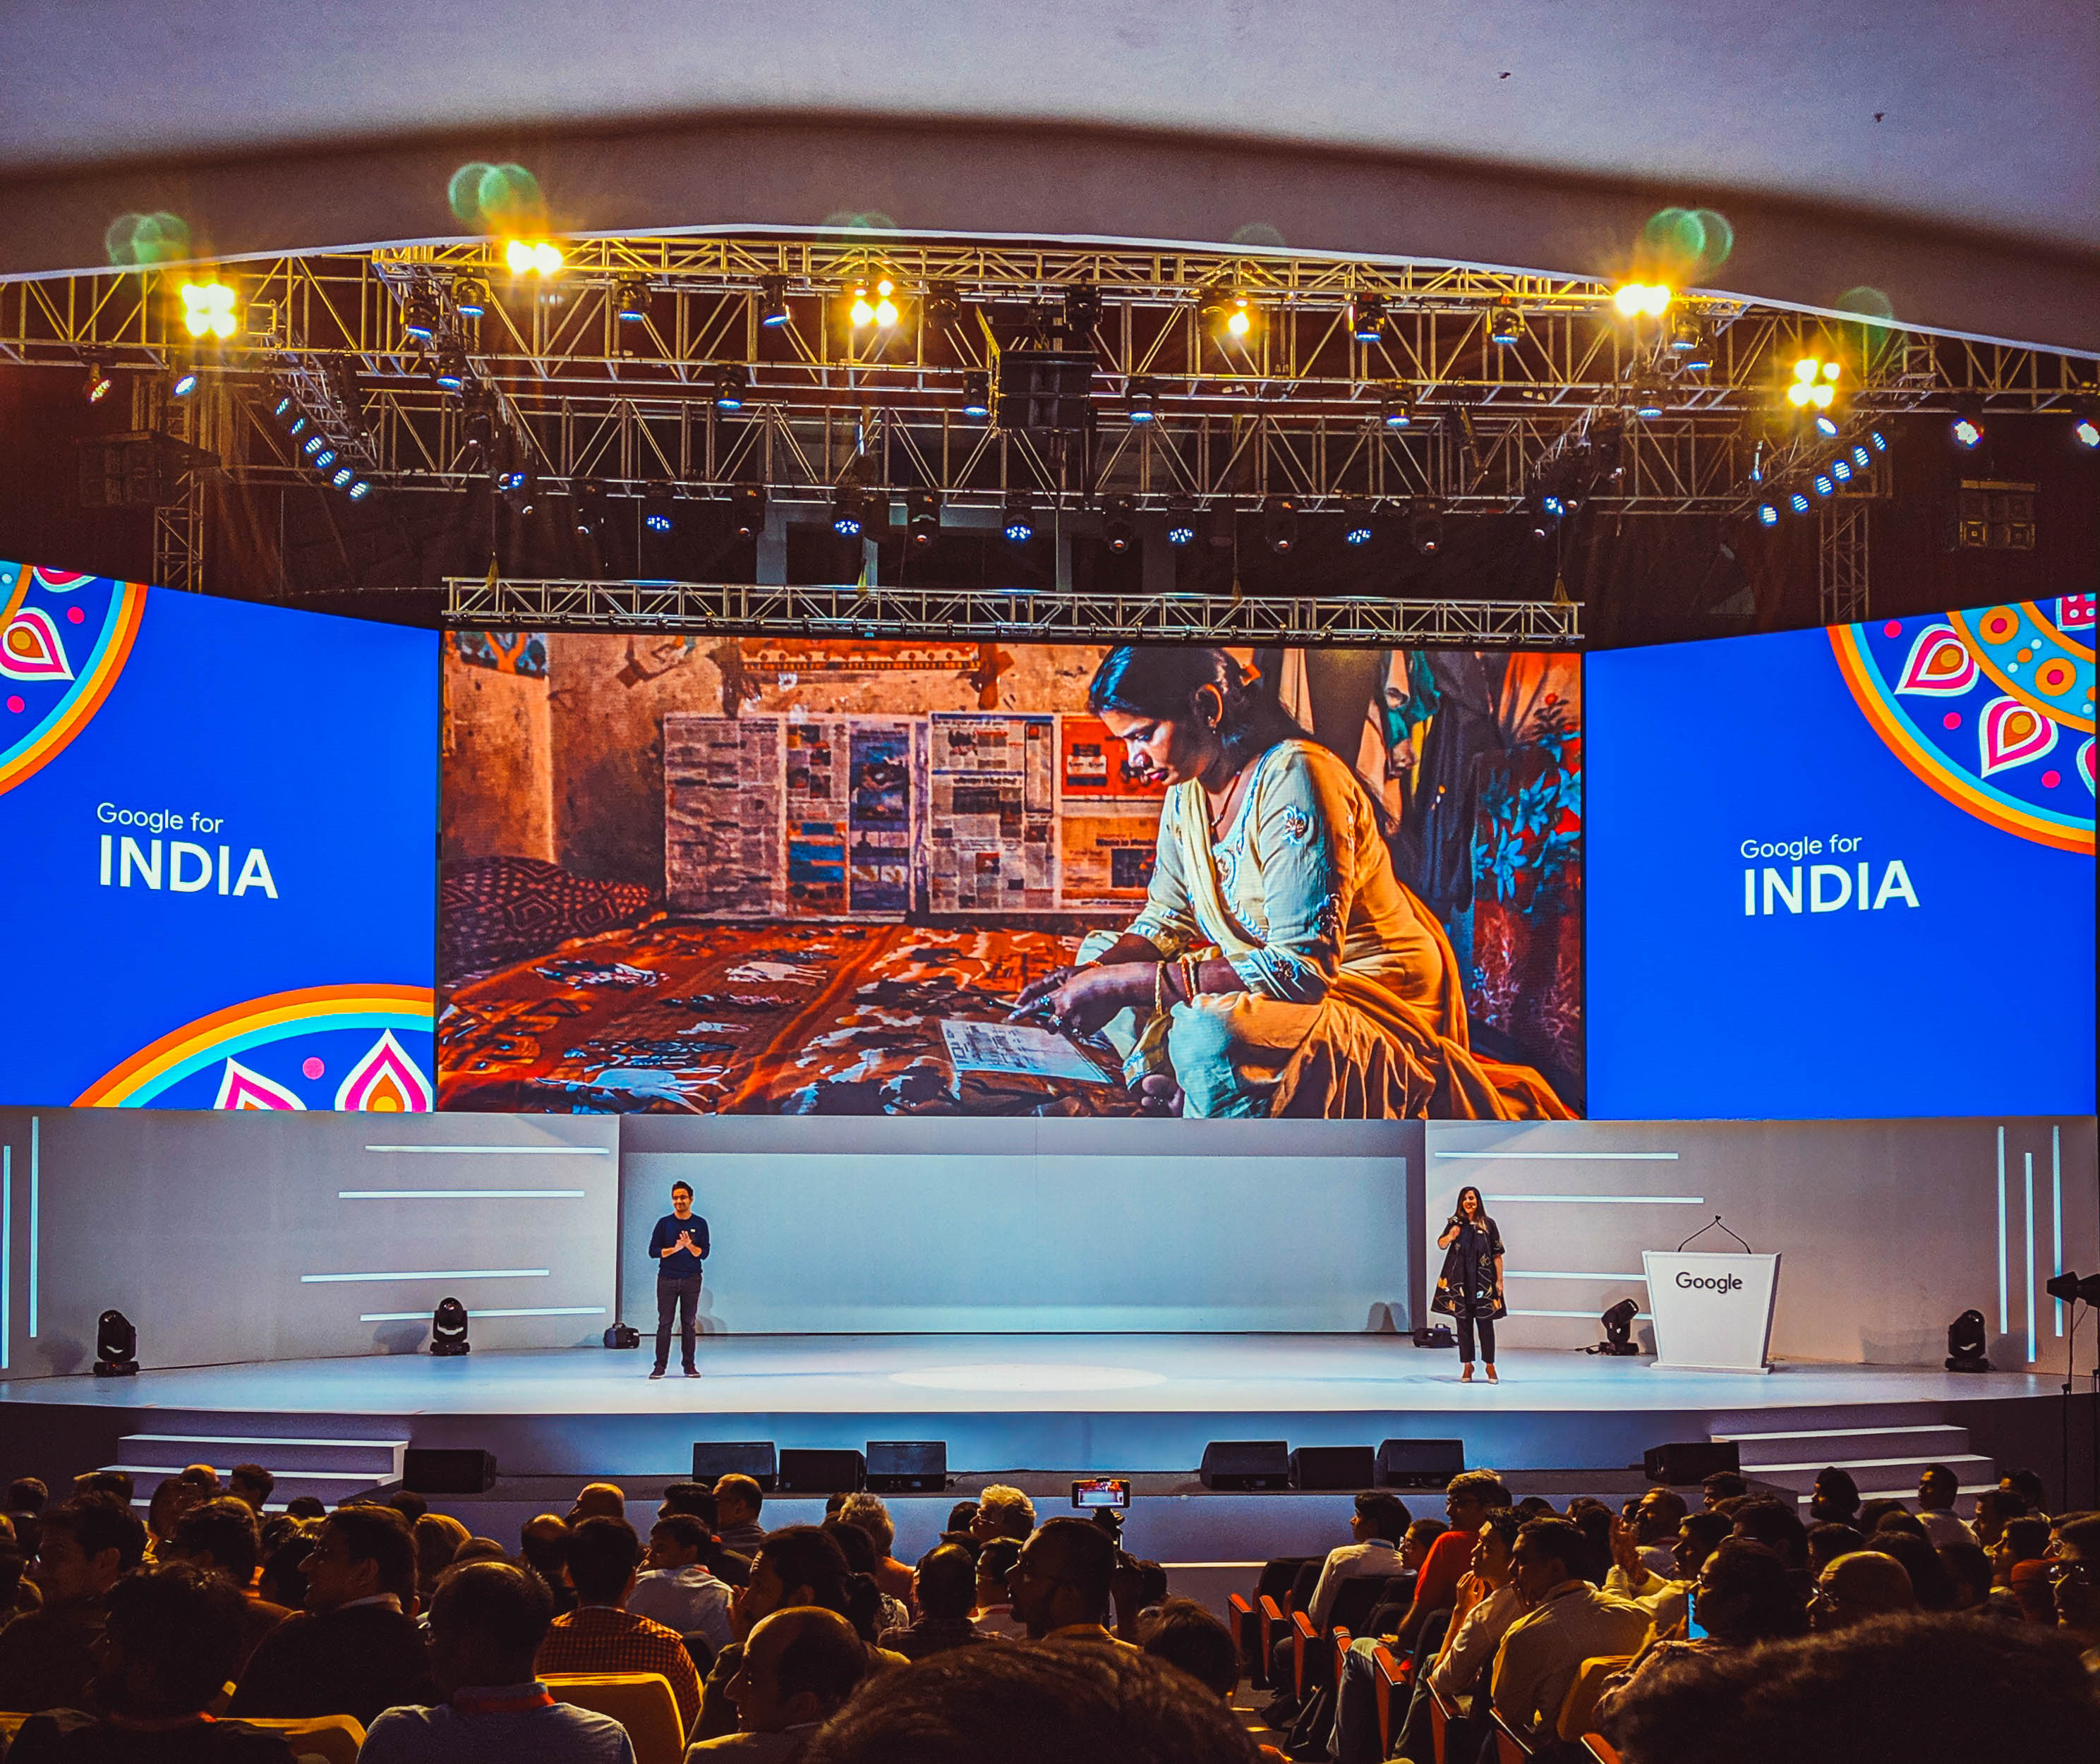 googleforindia, google for india, eyesfortechnology, phoneline, bolo, artificial intelligence, research center, google research center, bangalore google research center, internet, indian government, technology, policy, google for india 2019